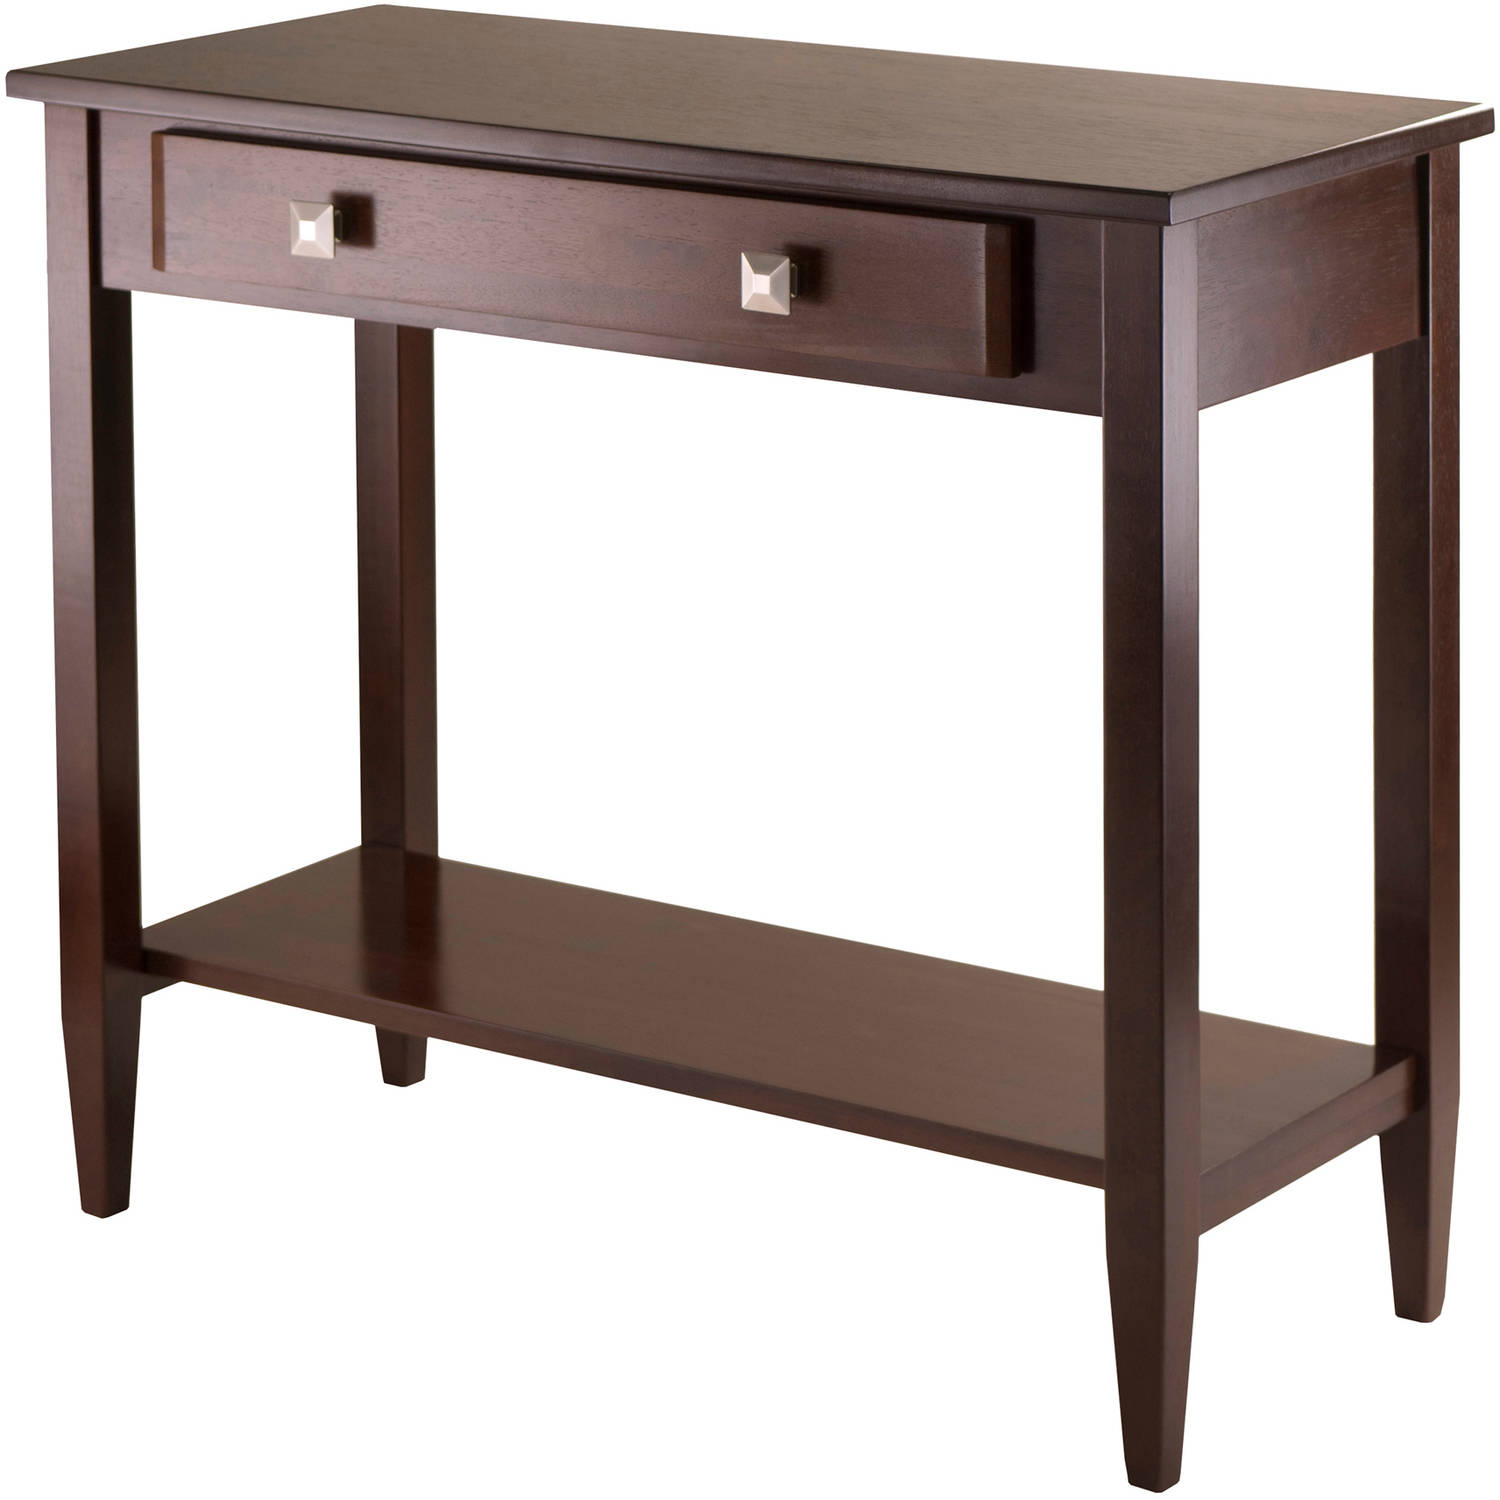 Walnut Console Table richmond hall console table, antique walnut - walmart